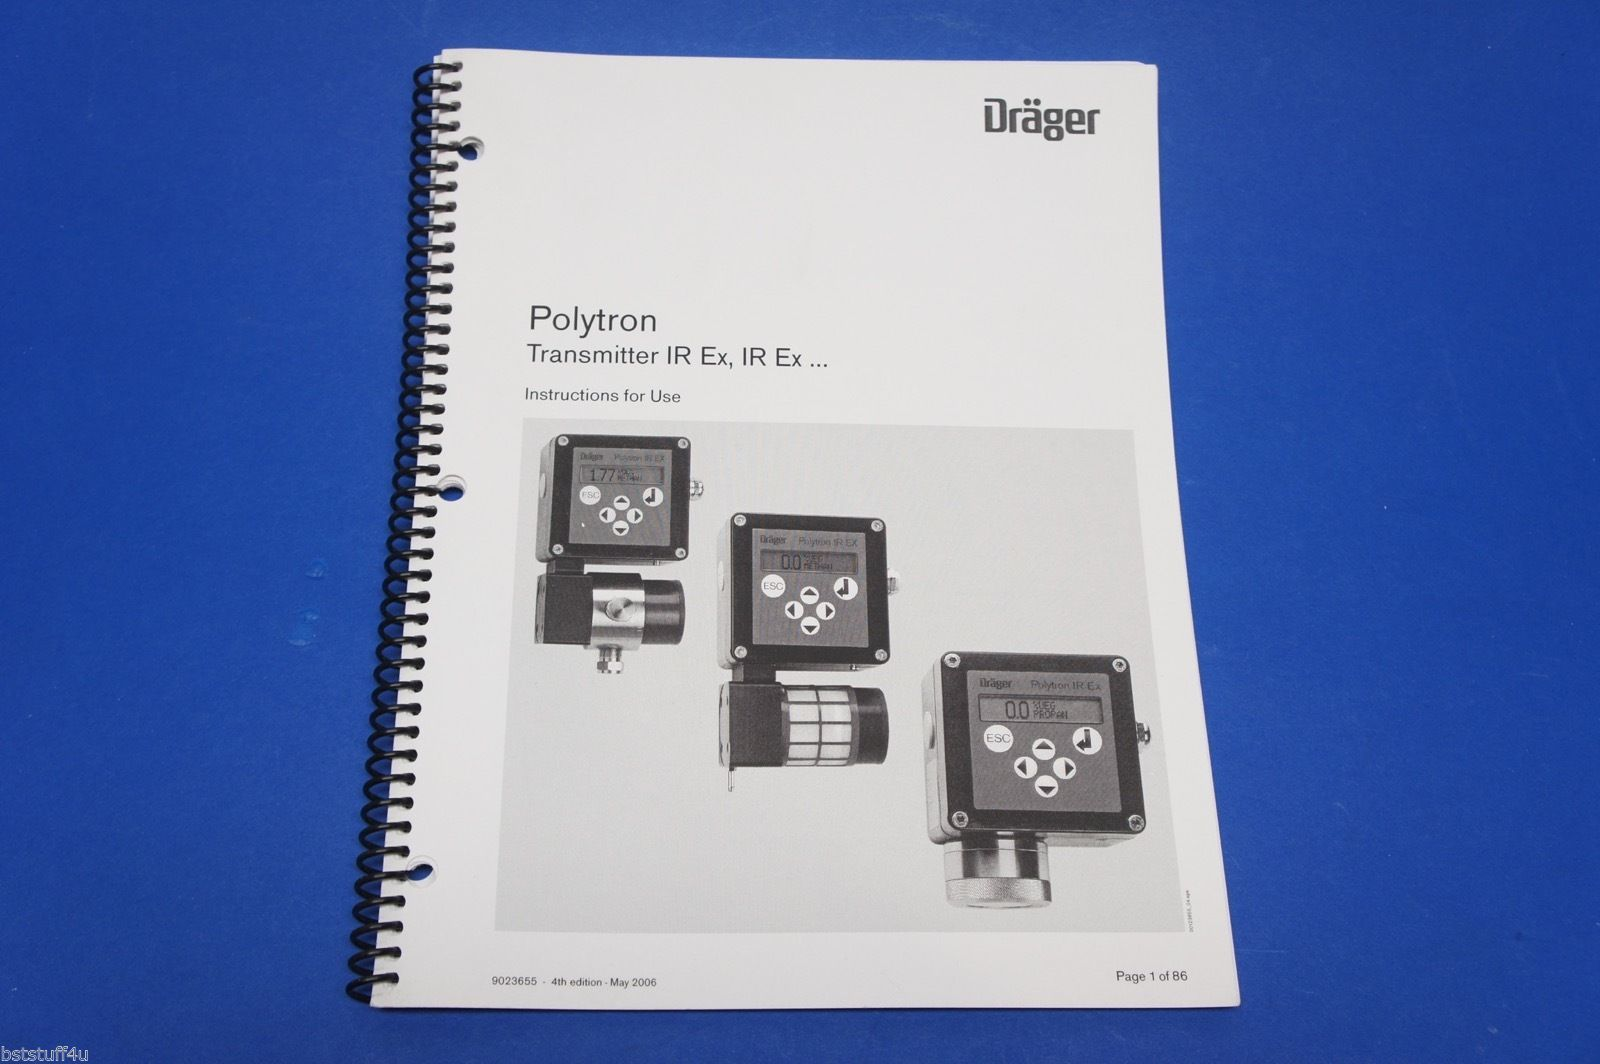 Drager Polytron Transmitter IR Ex, IR Ex… Instruction